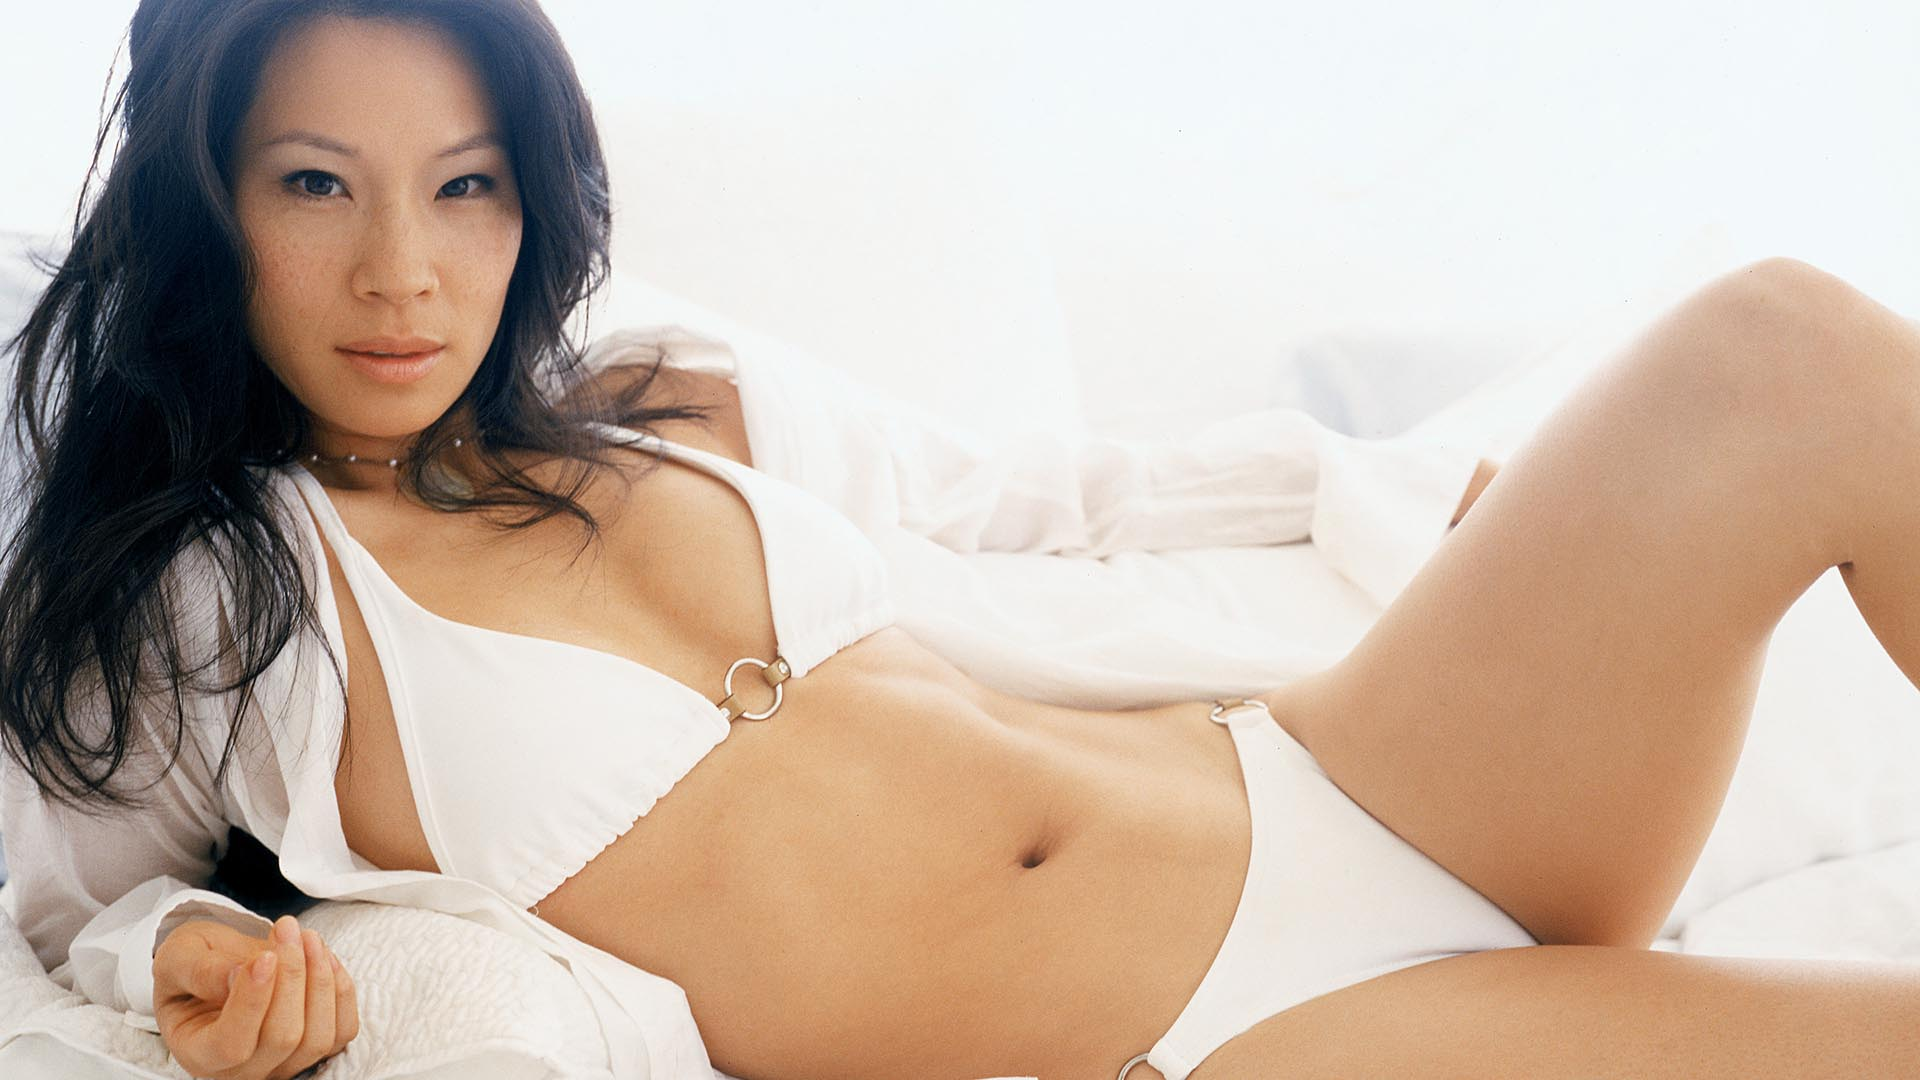 lucy liu free wallpaper - photo #11